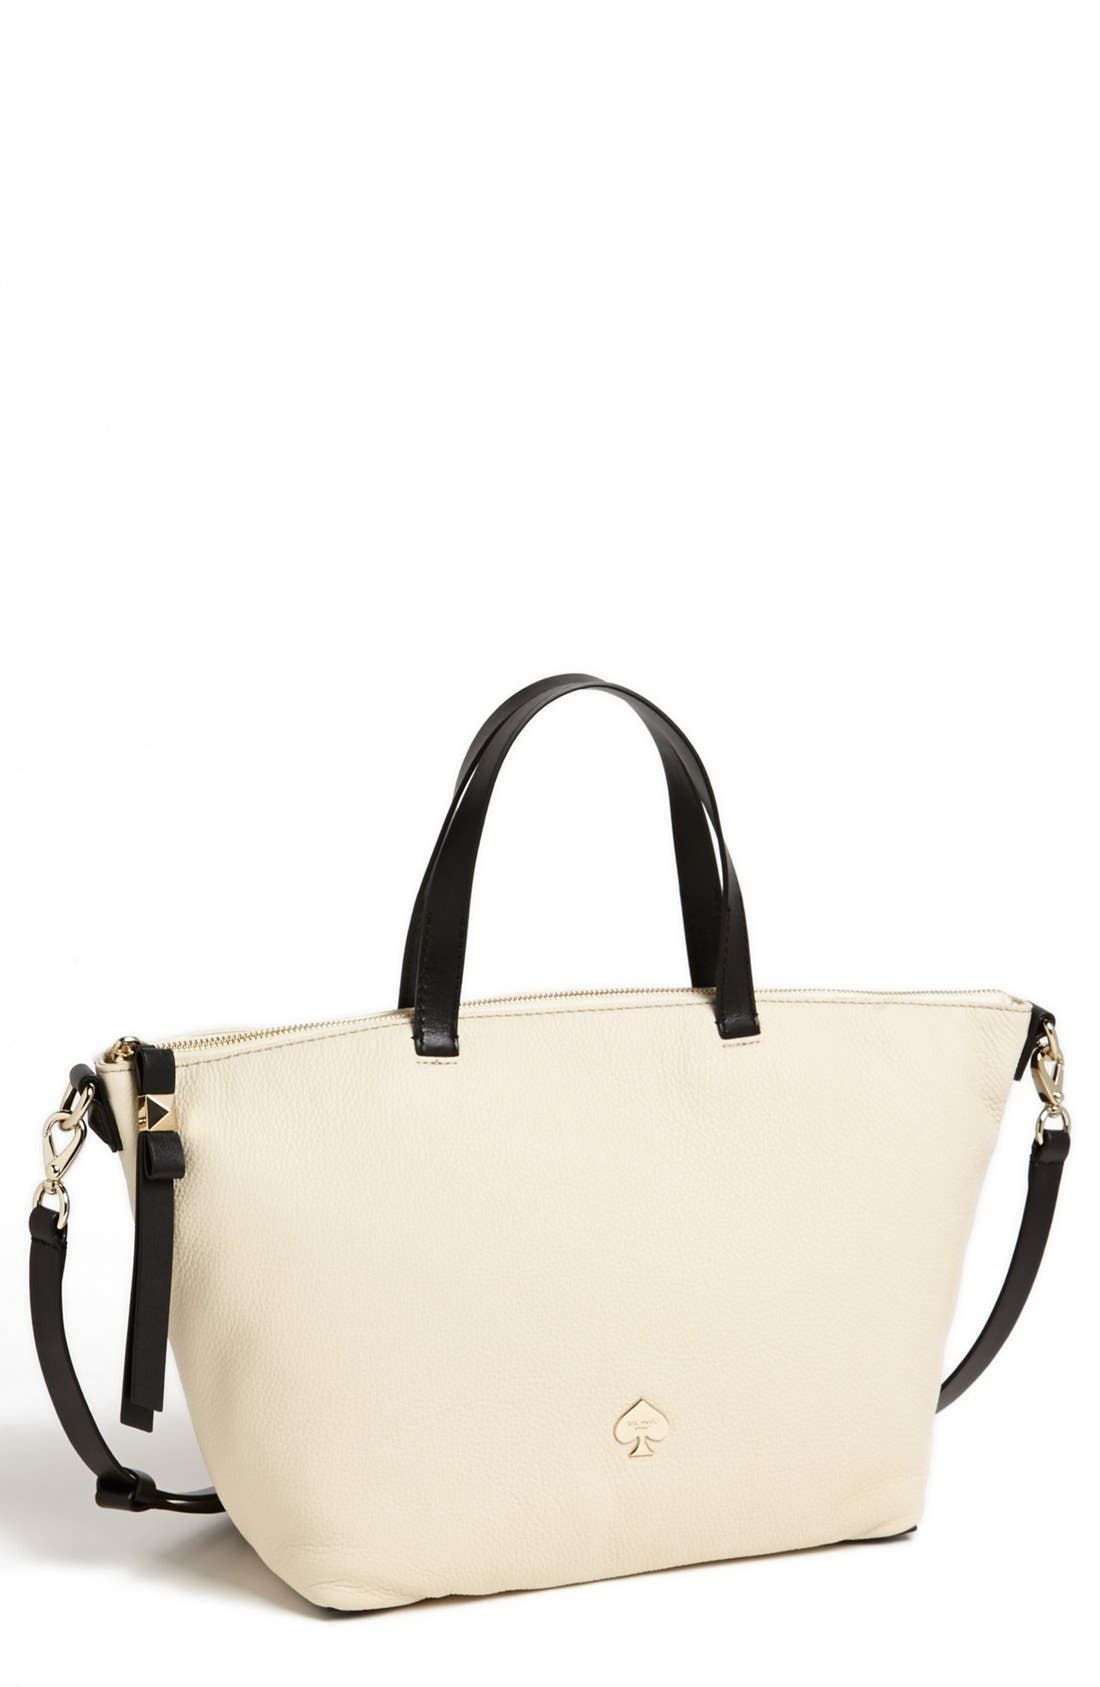 Main Image - kate spade new york 'leroy street -  linsley' crossbody tote